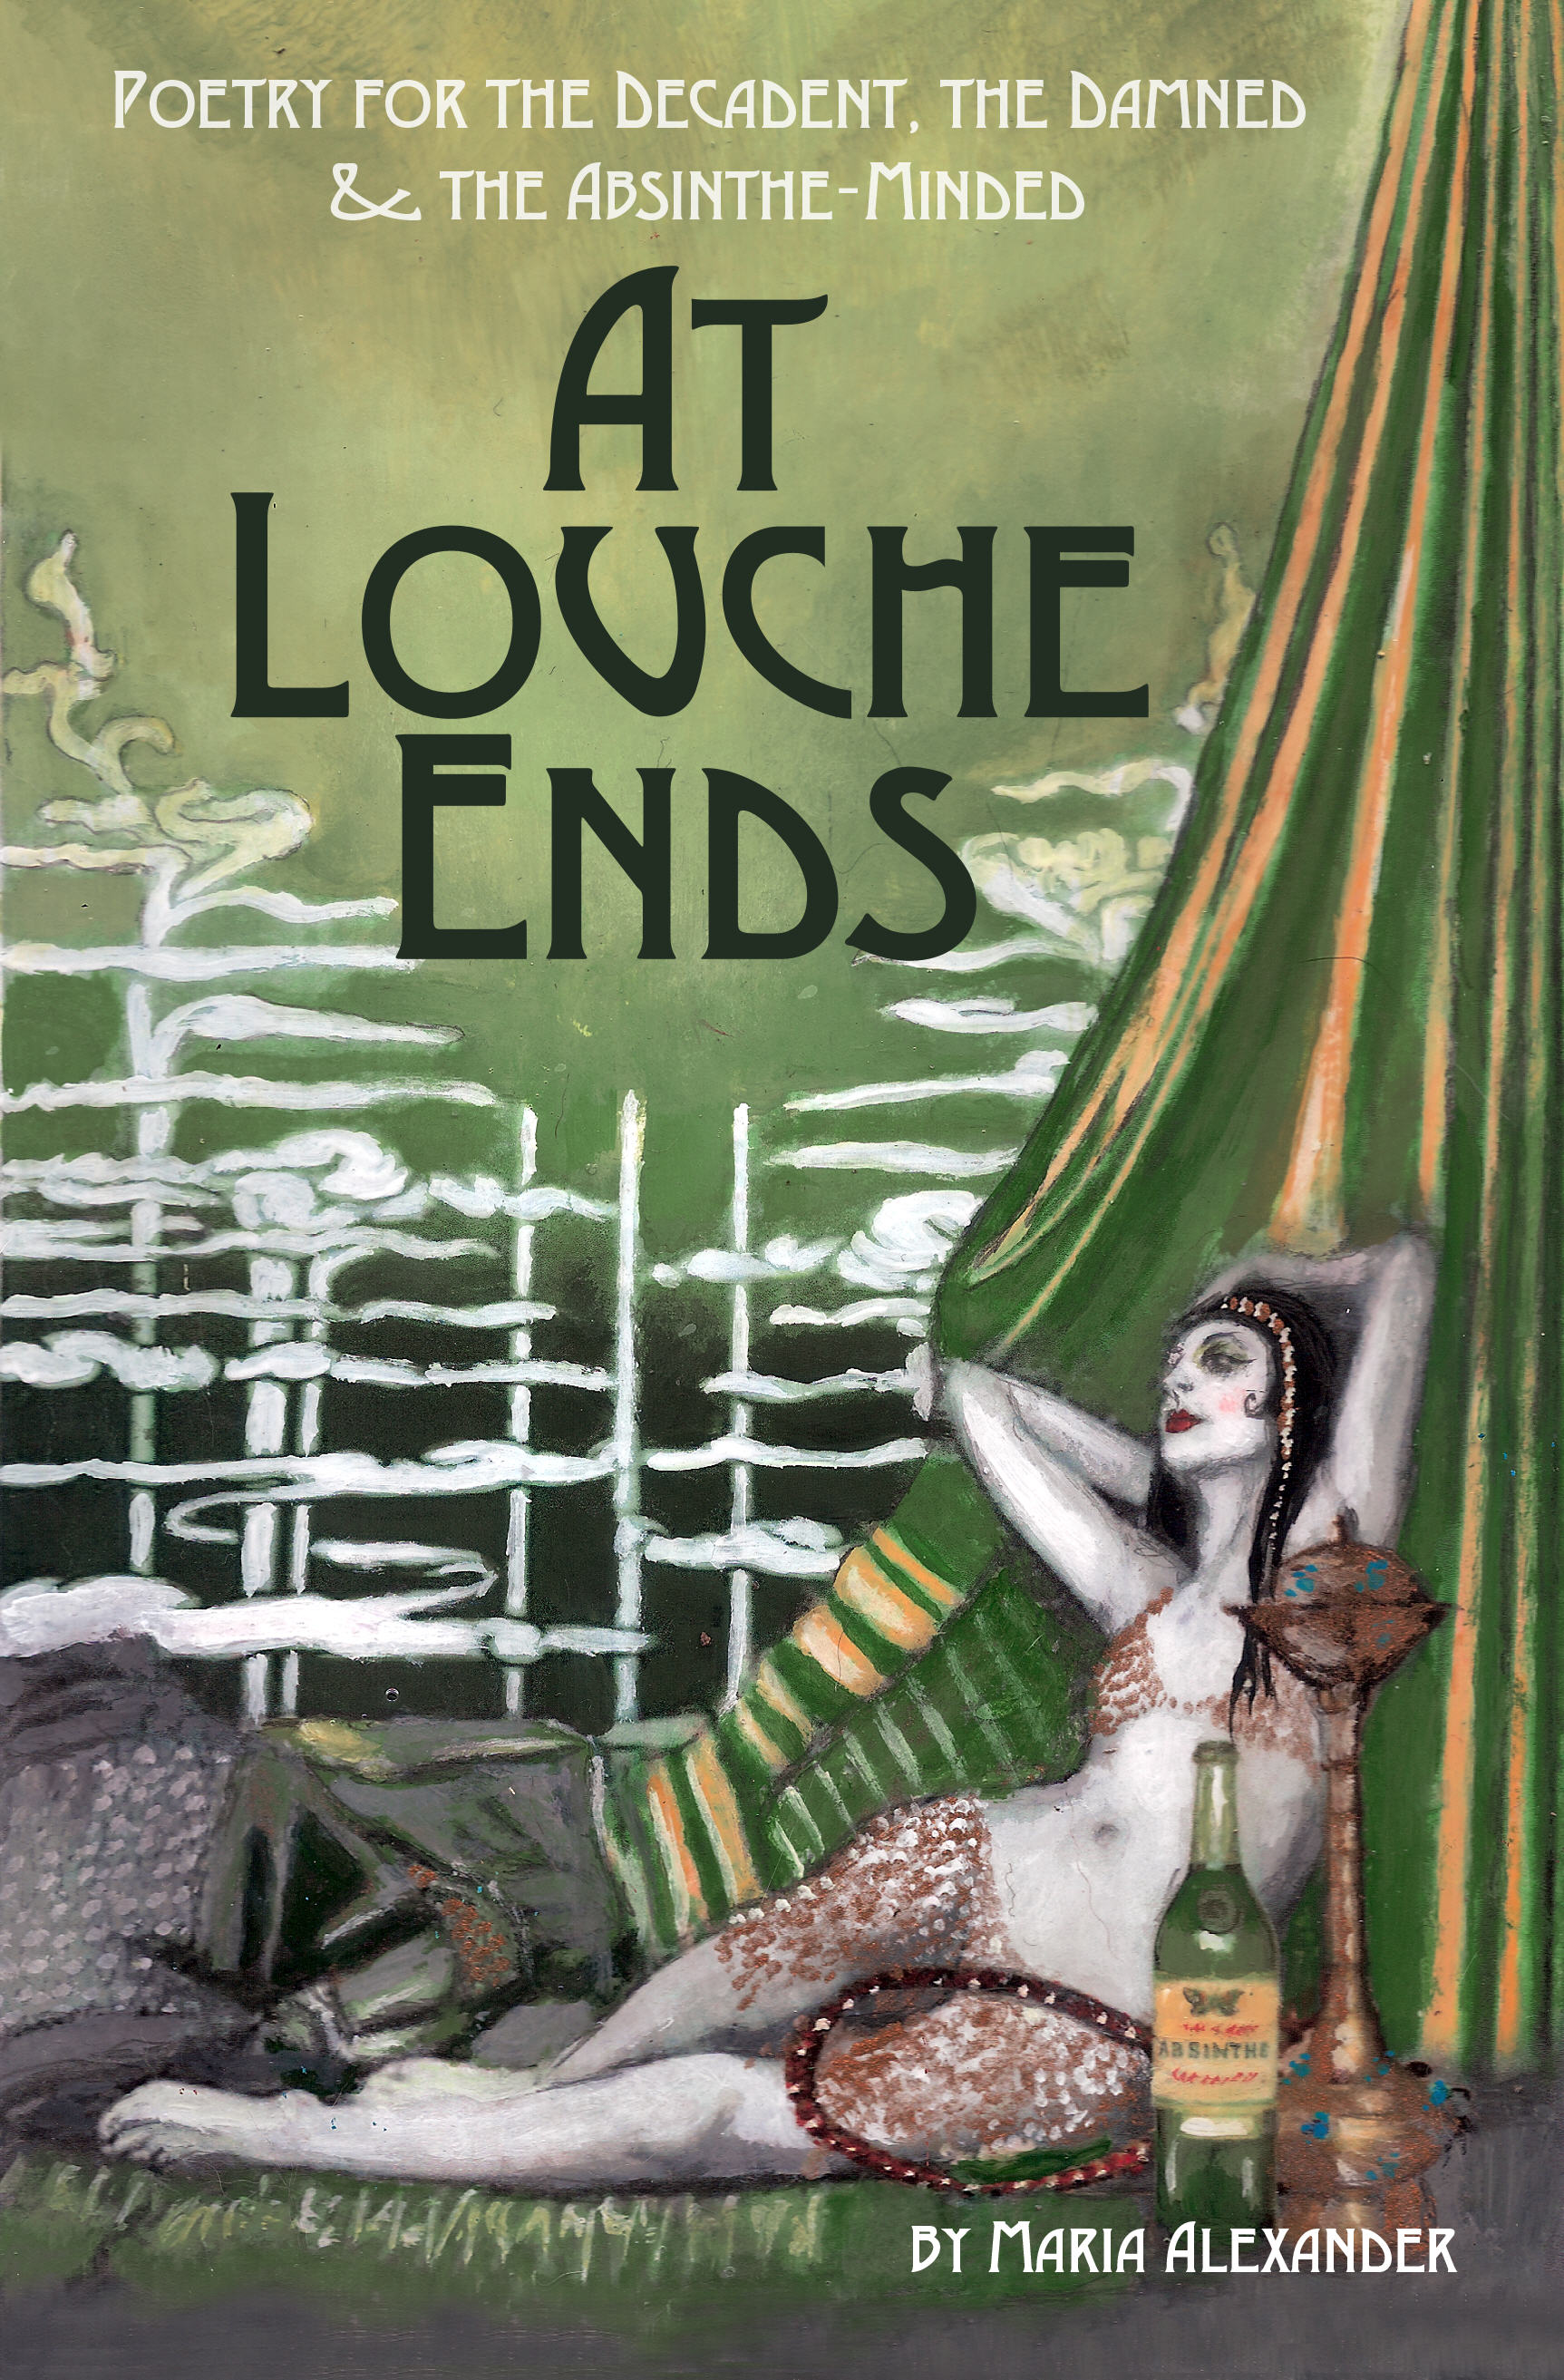 at louche ends maria alexander poetry